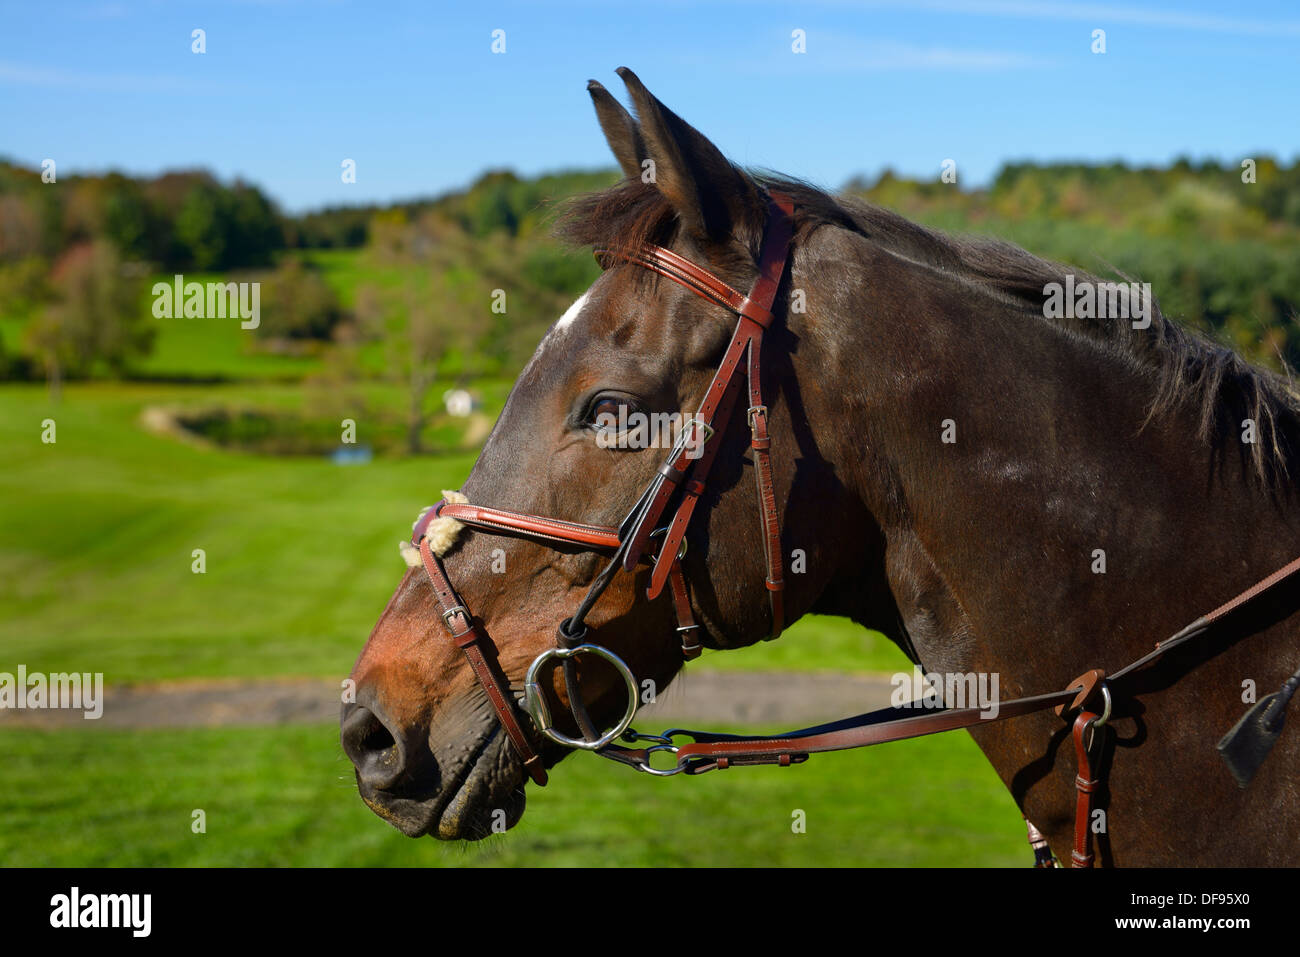 Face of a bay thoroughbred gelding horse outdoors with green fields at horse farm Stock Photo